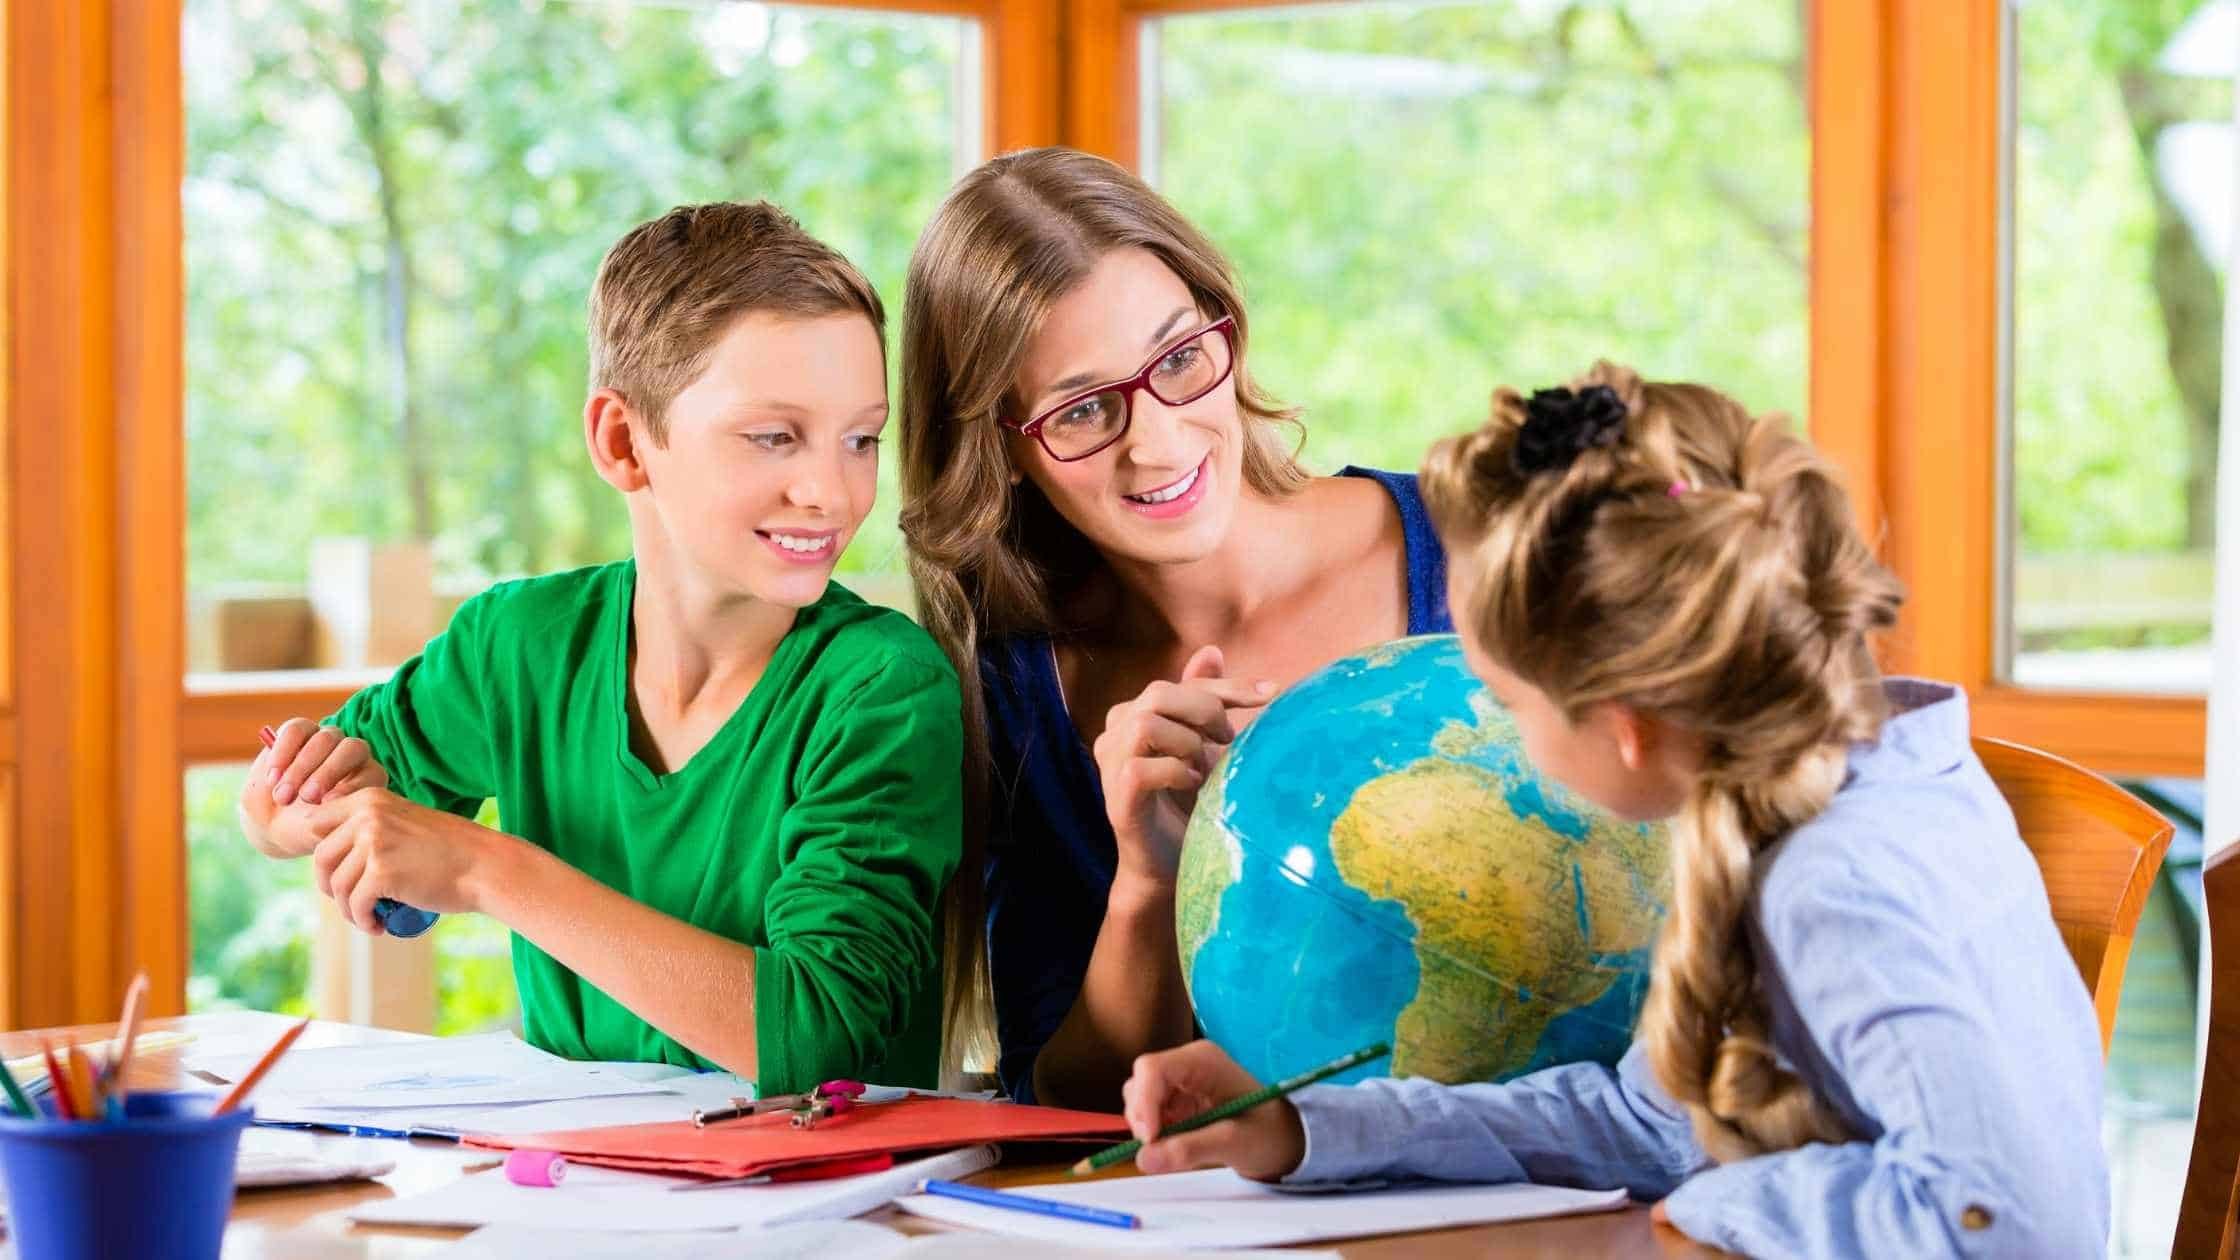 Mom sitting at table with son and daughter teaching them with a globe